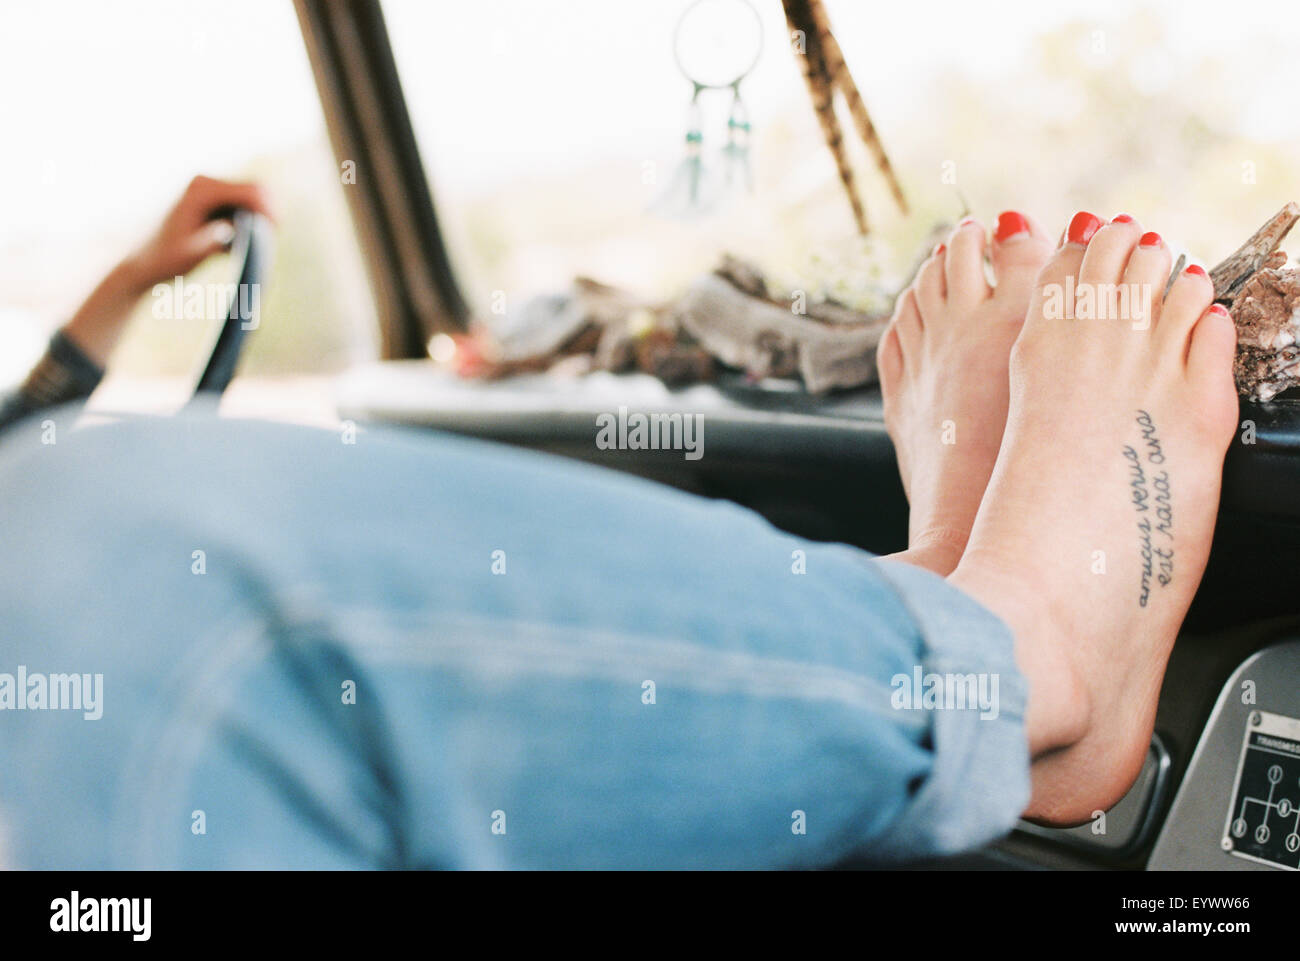 Barefoot woman resting her feet on the dashboard of a 4x4, a tattoo on her right foot. - Stock Image